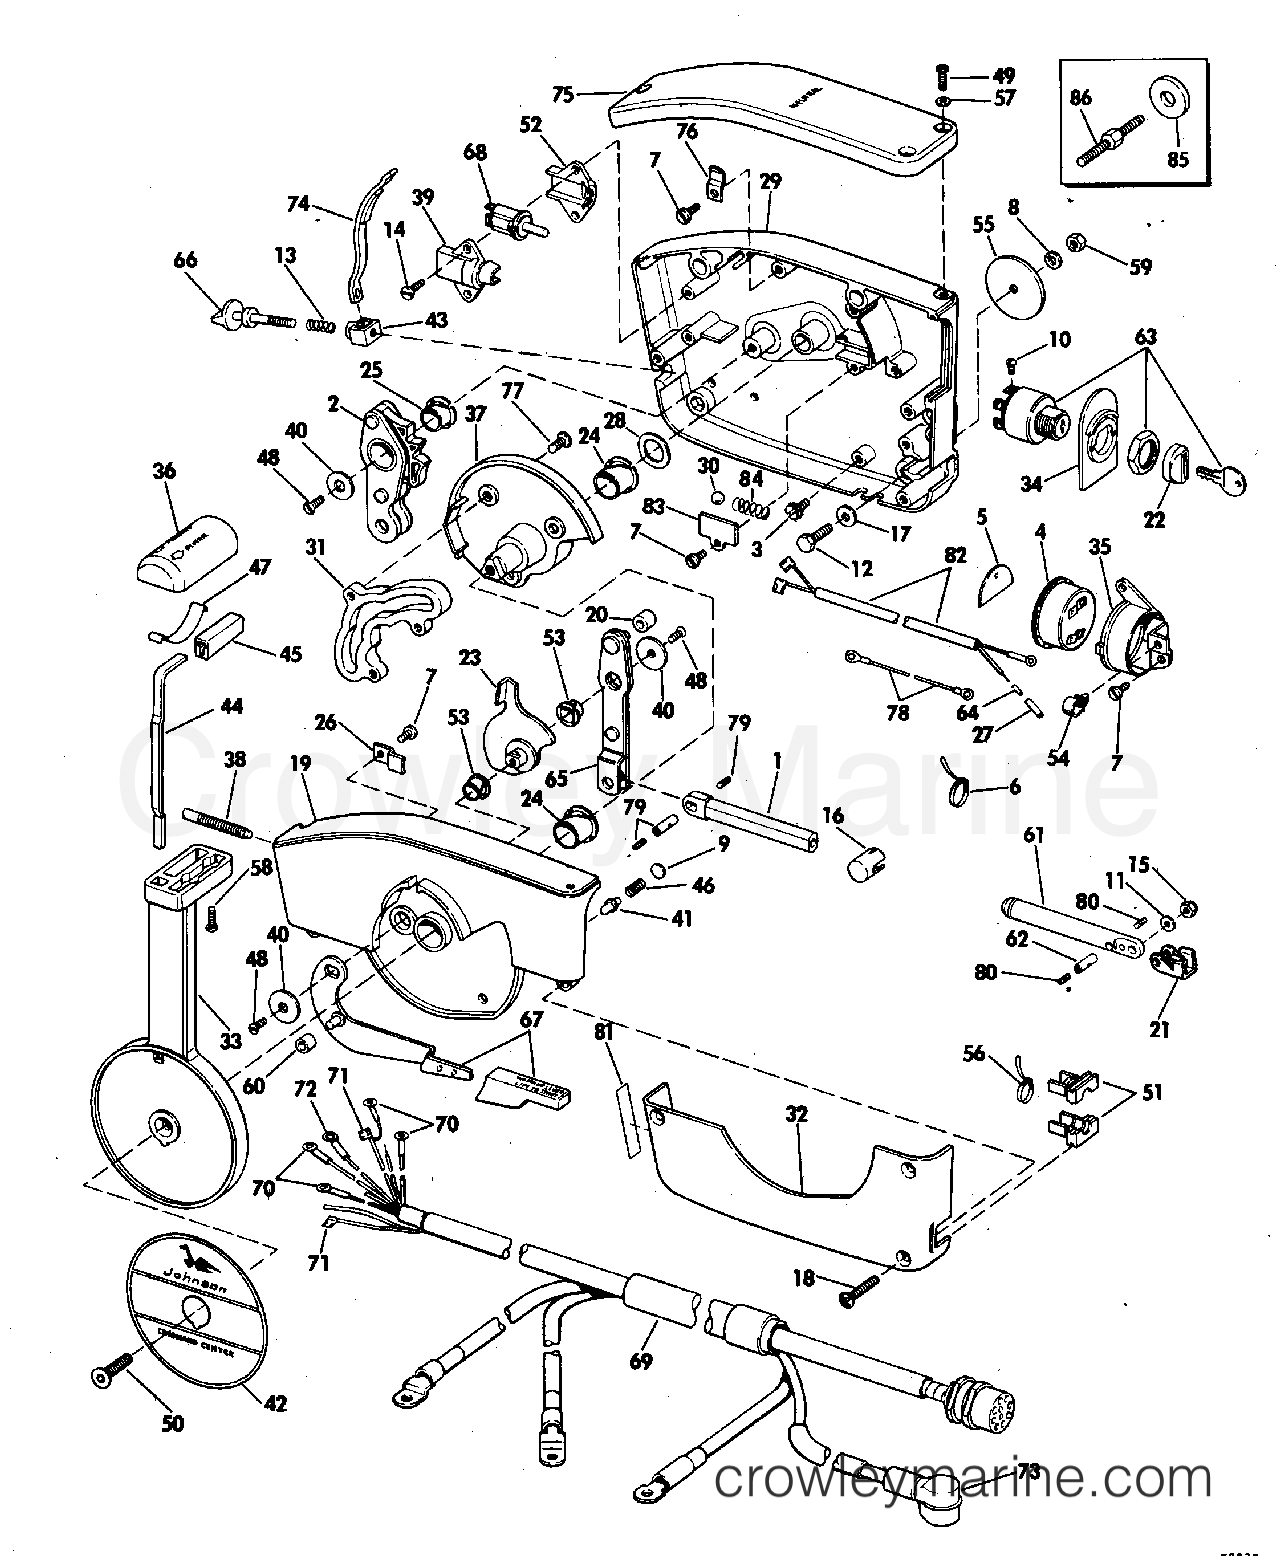 diagram of 1972 mercury marine mercury outboard 1075202 throttle  controll box wiring diagram johnson outboard #13